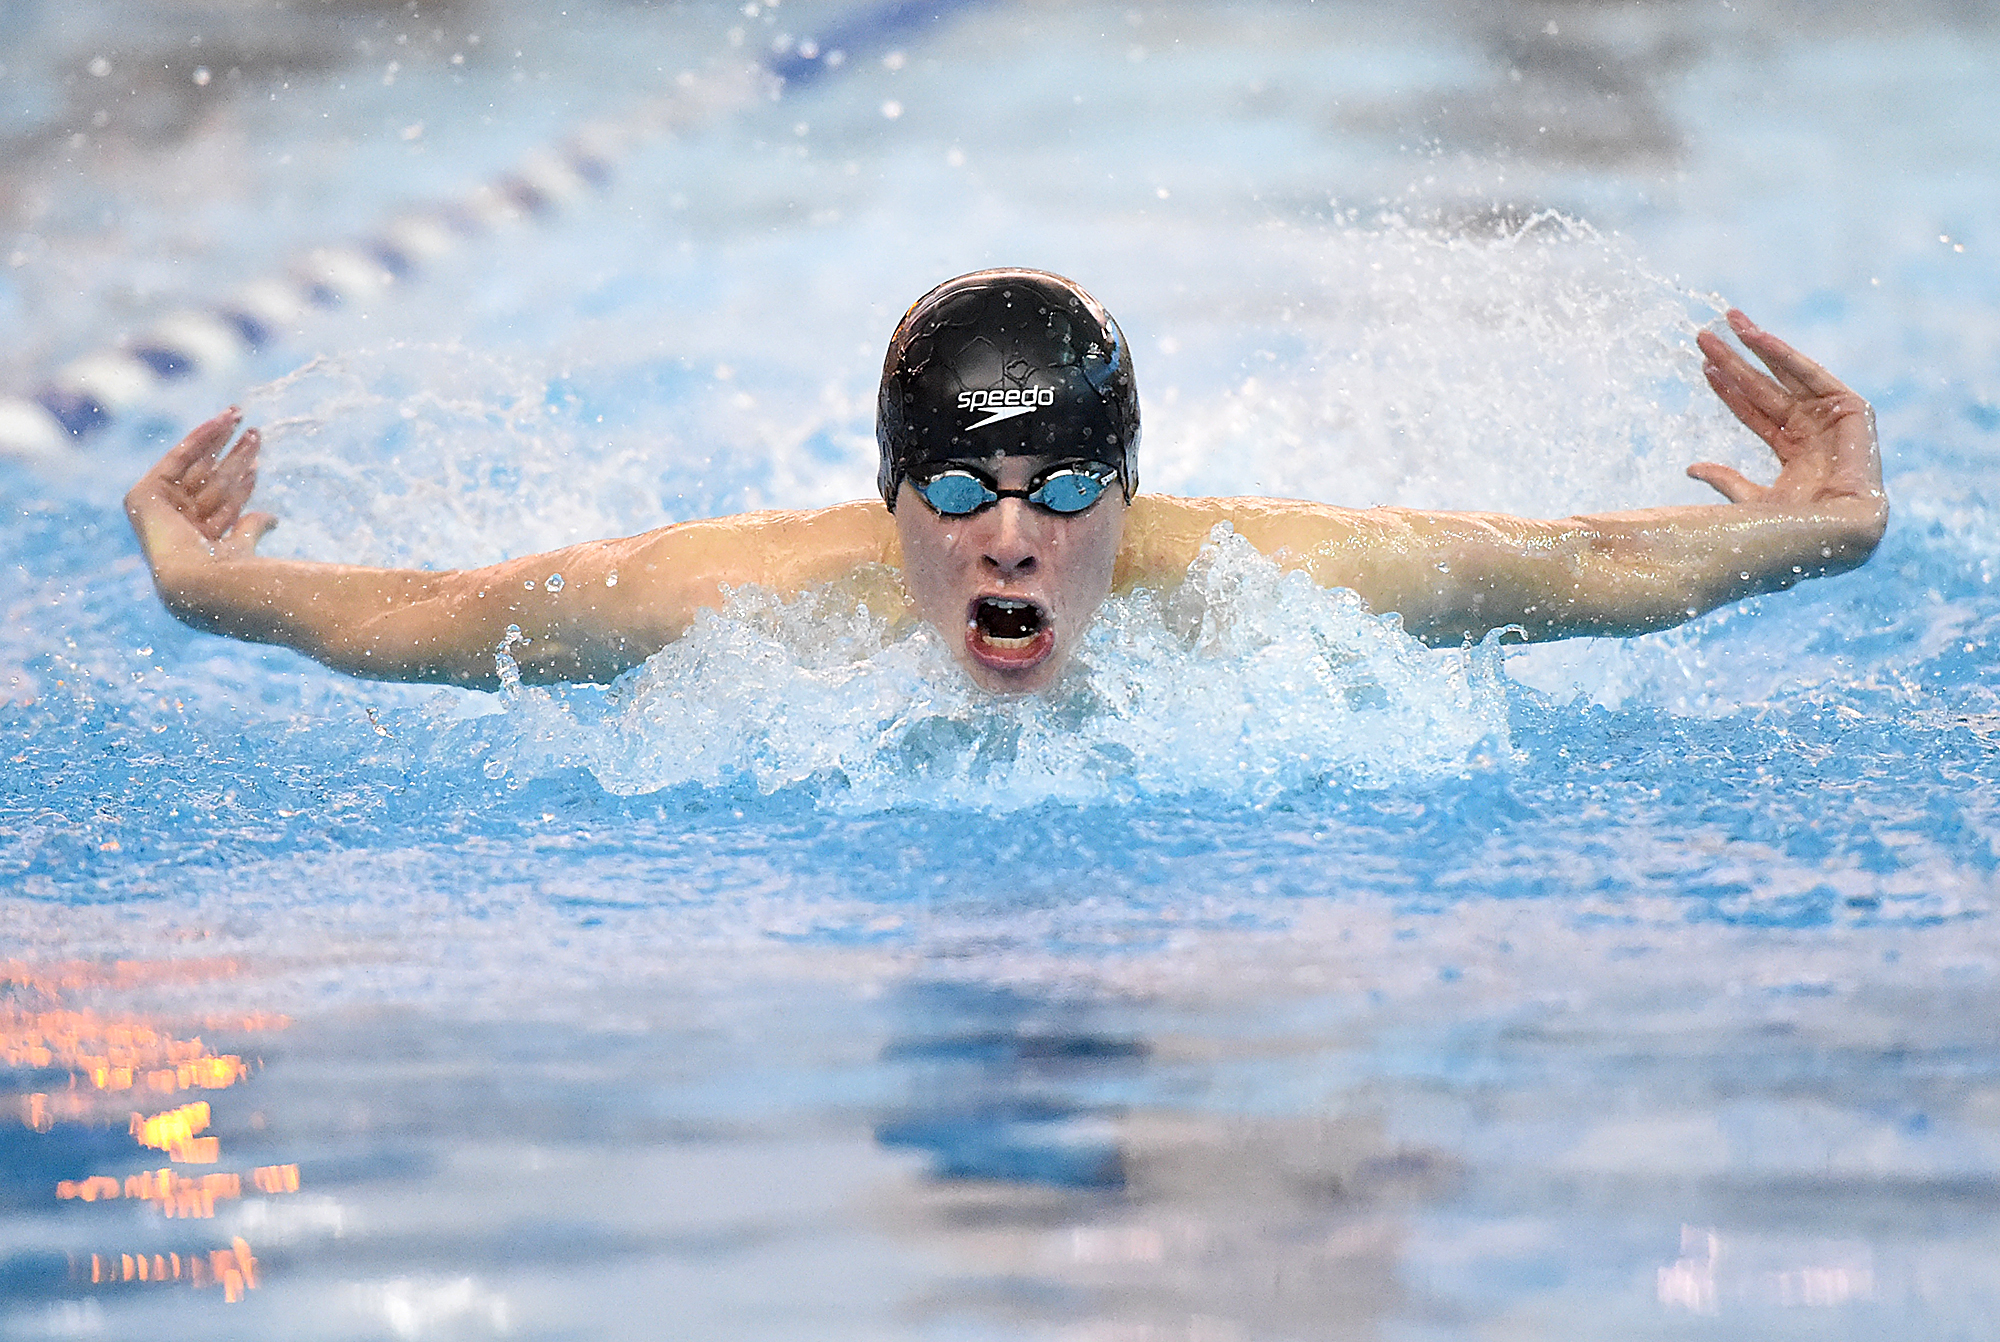 Council Rock South's Andrew Ridings swims the 100-yard butterfly during their swim meet at Council Rock North in Newtown Township on Friday, February 3, 2017.